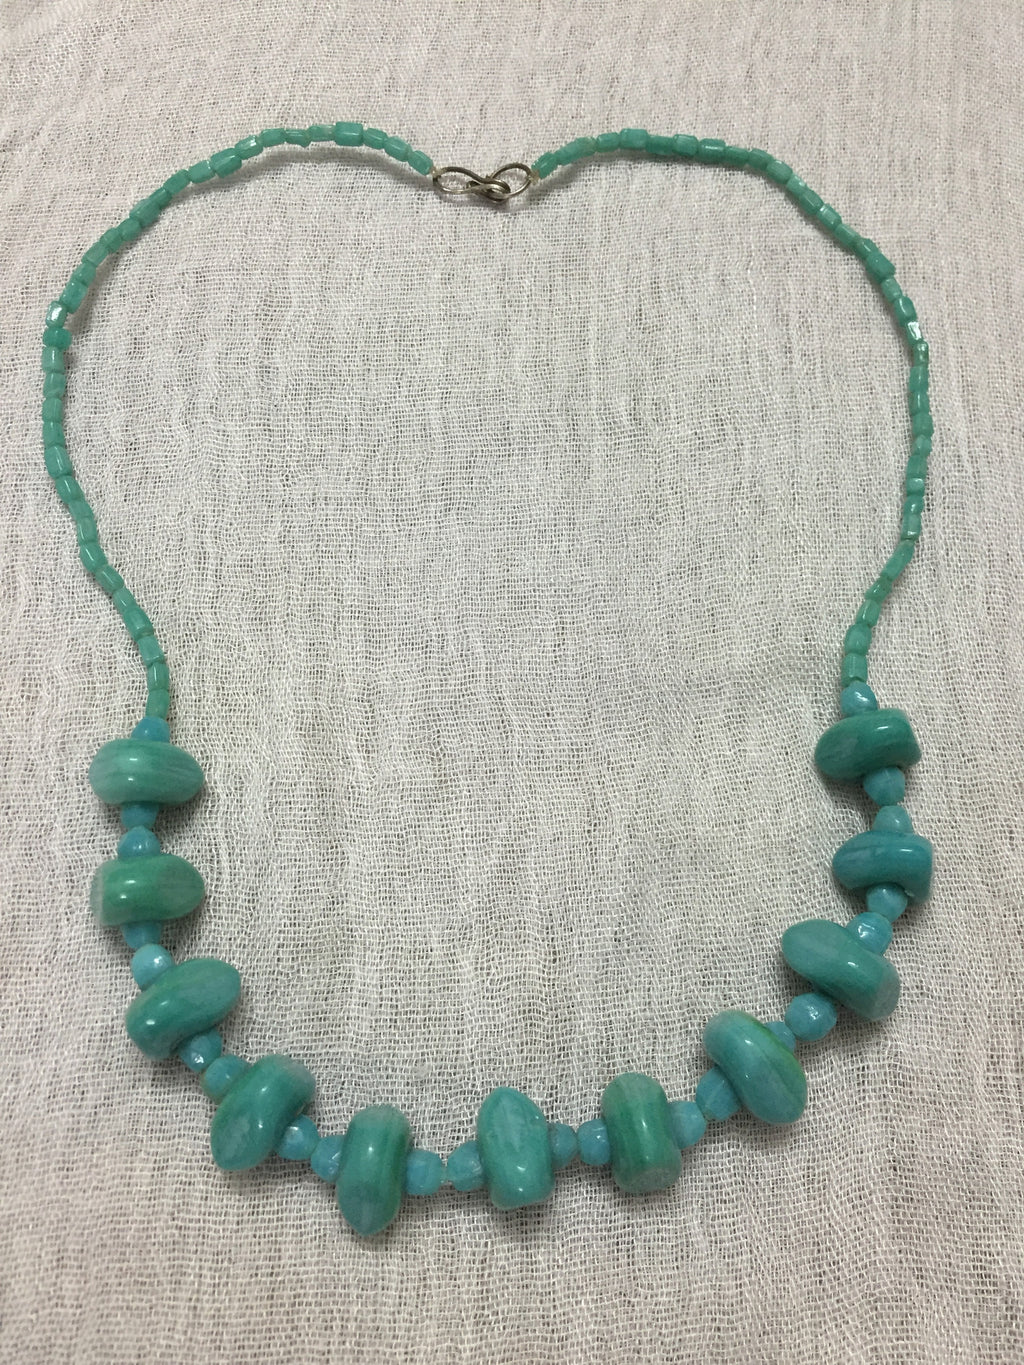 The Turquoise Blue different sized beads Neckpiece - #FTFY - For The Fun Years